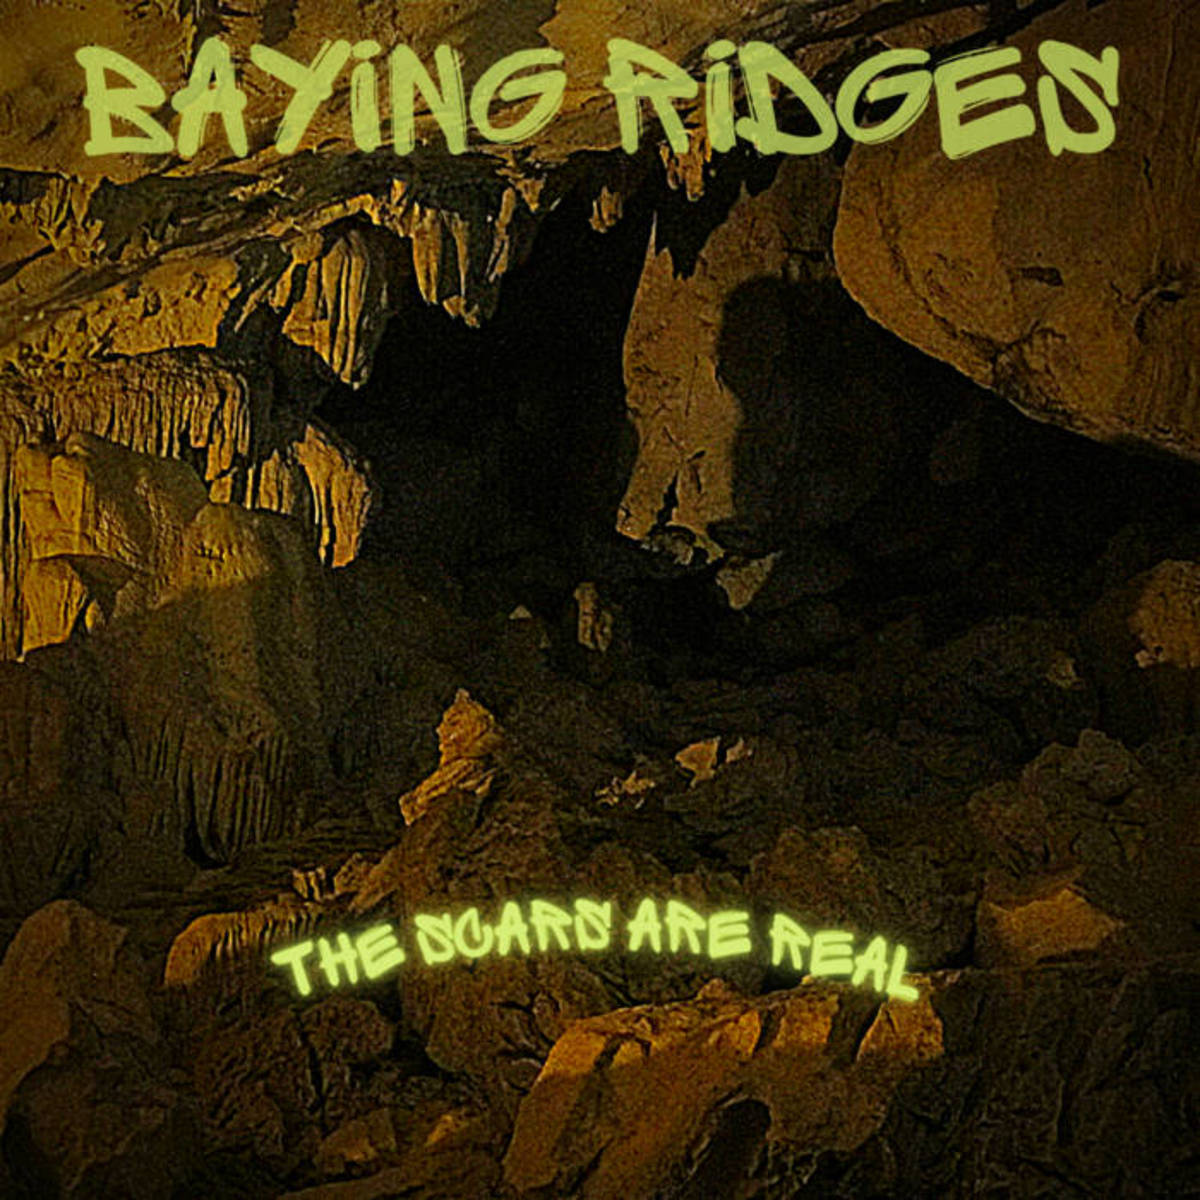 ambient-singles-reviewed-welcome-to-the-den-and-the-scars-are-real-by-baying-ridges